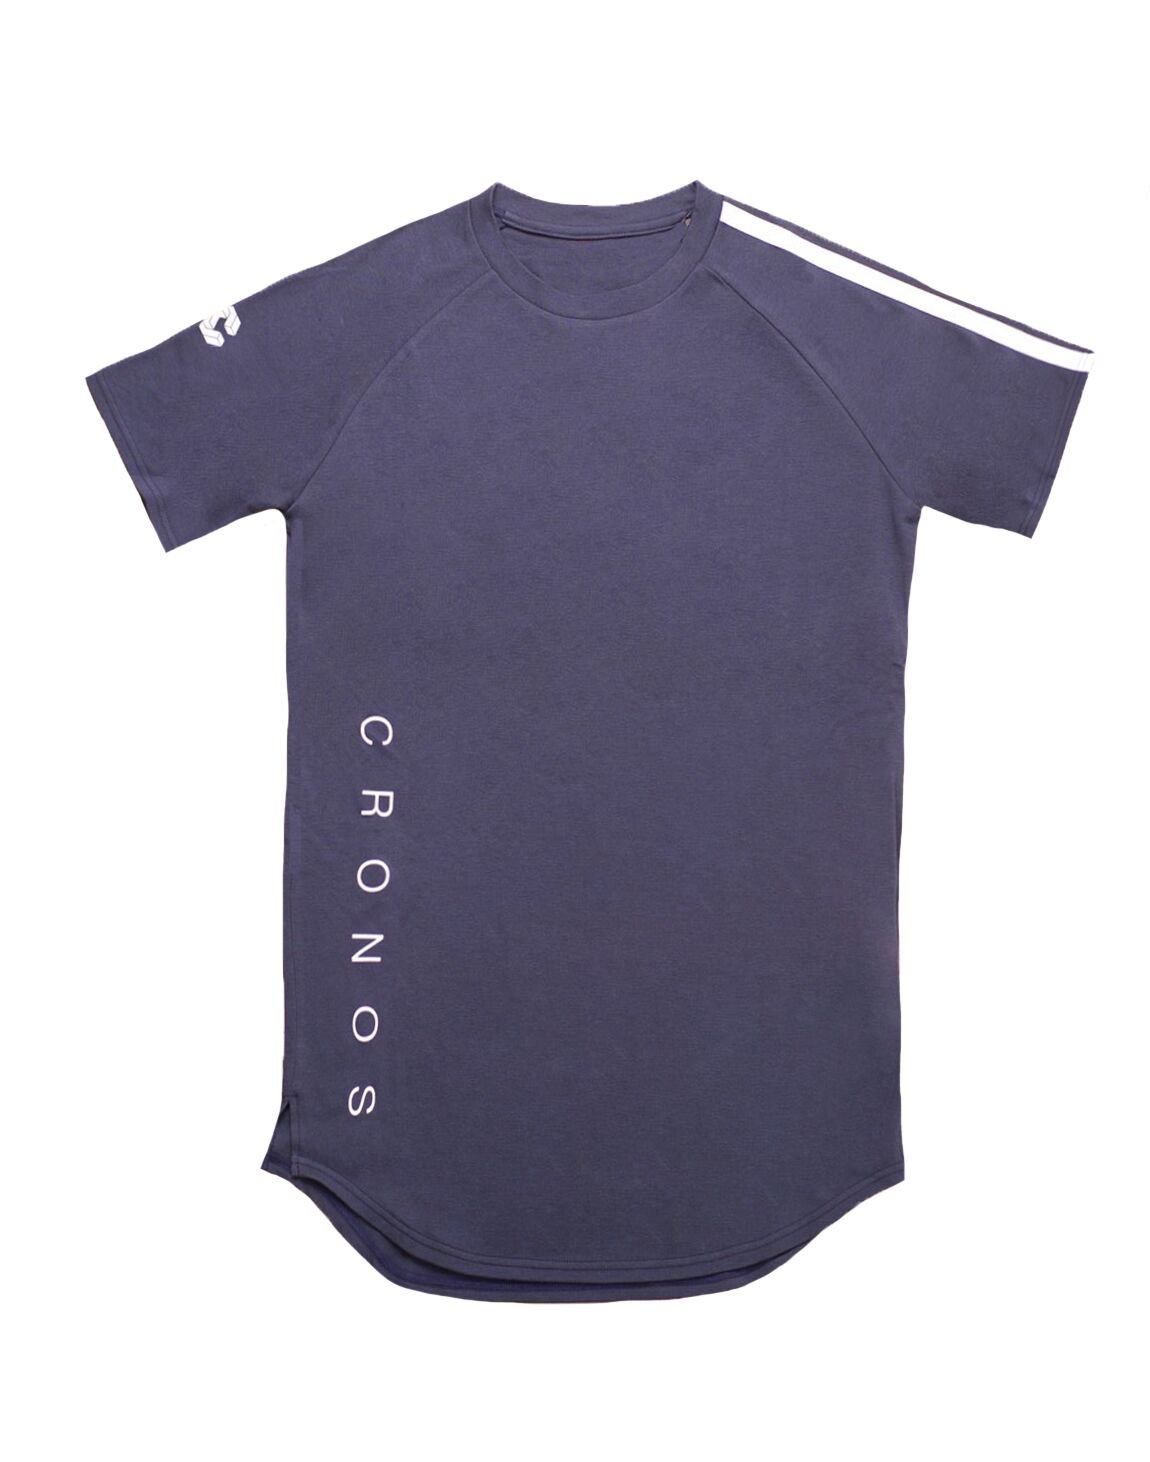 <img class='new_mark_img1' src='https://img.shop-pro.jp/img/new/icons55.gif' style='border:none;display:inline;margin:0px;padding:0px;width:auto;' />CRONOS SHOULDER TWO LINE T-SHIRTS【NAVY】